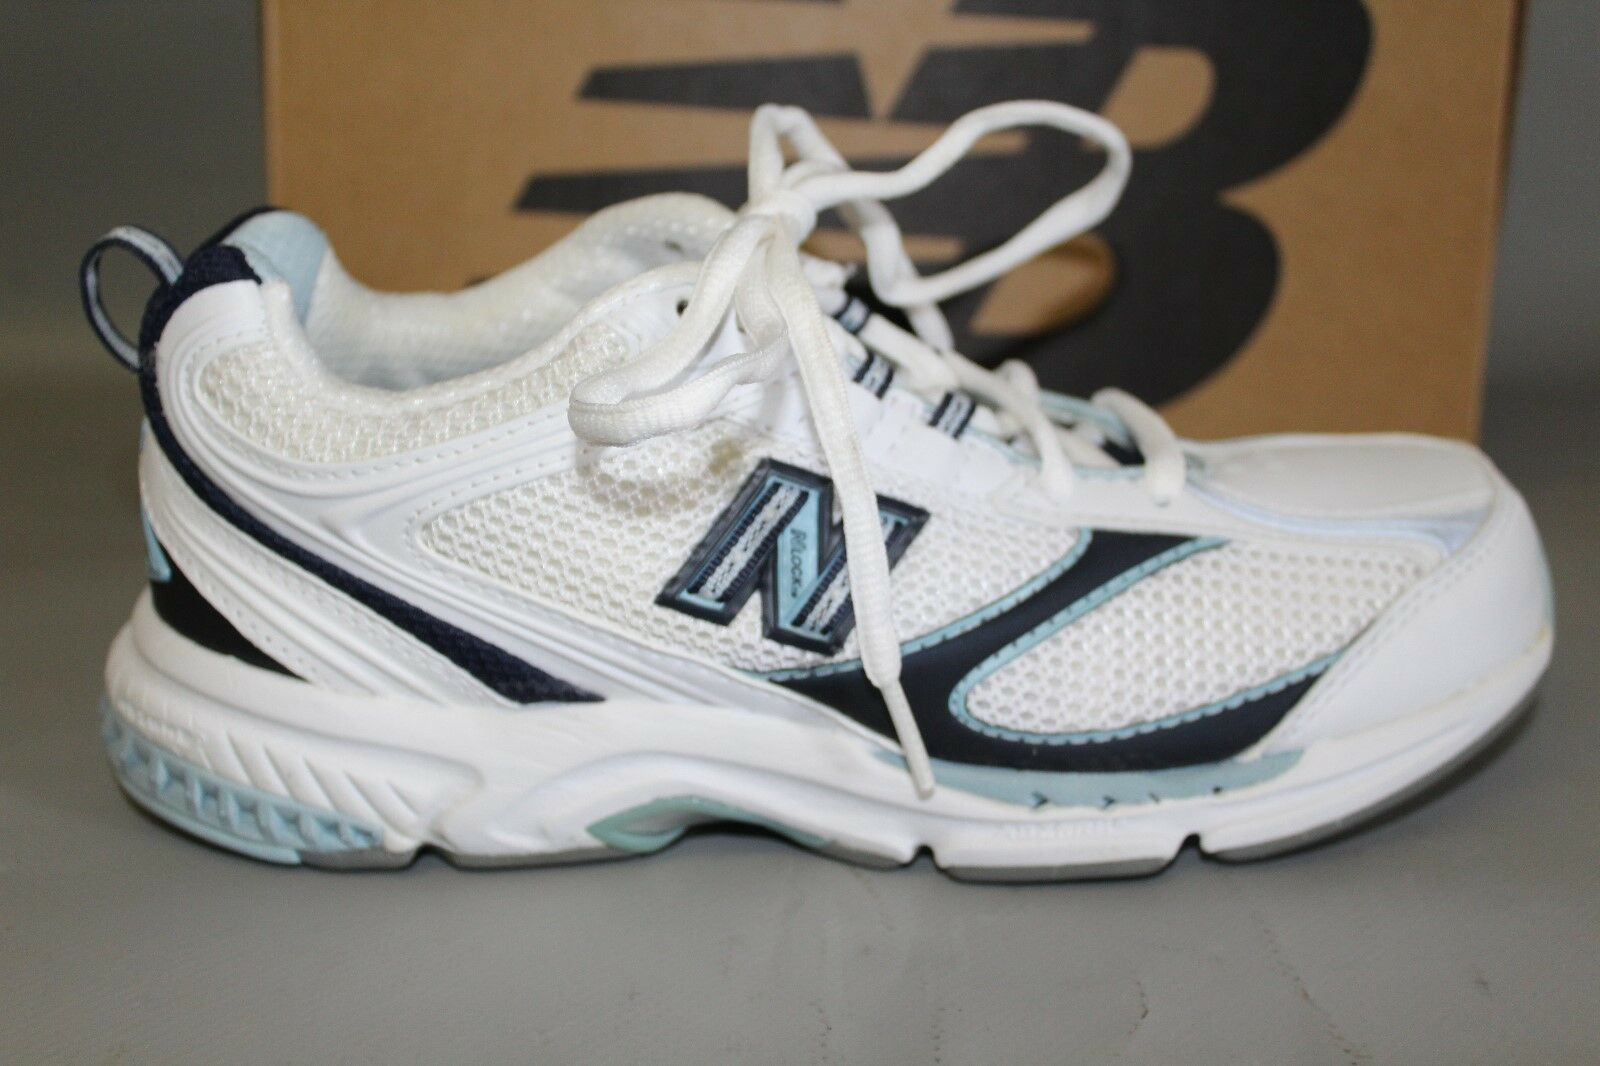 NEW Women's New Balance WW759WB Size 8.5 B White & bluee Supportive Walking shoes